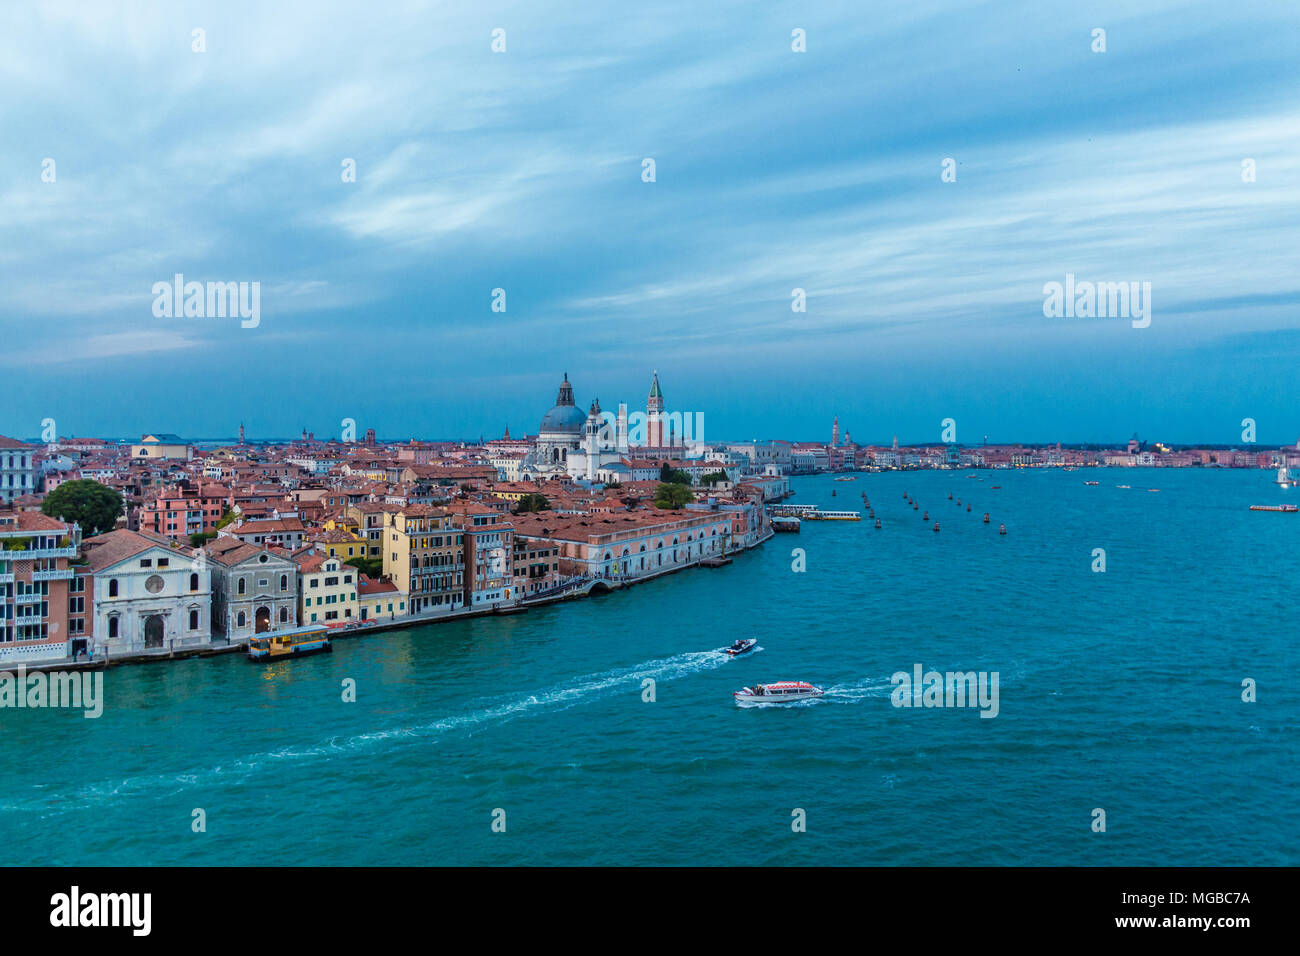 A Quiet Afternoon on the Main Canal in Venice - Stock Image